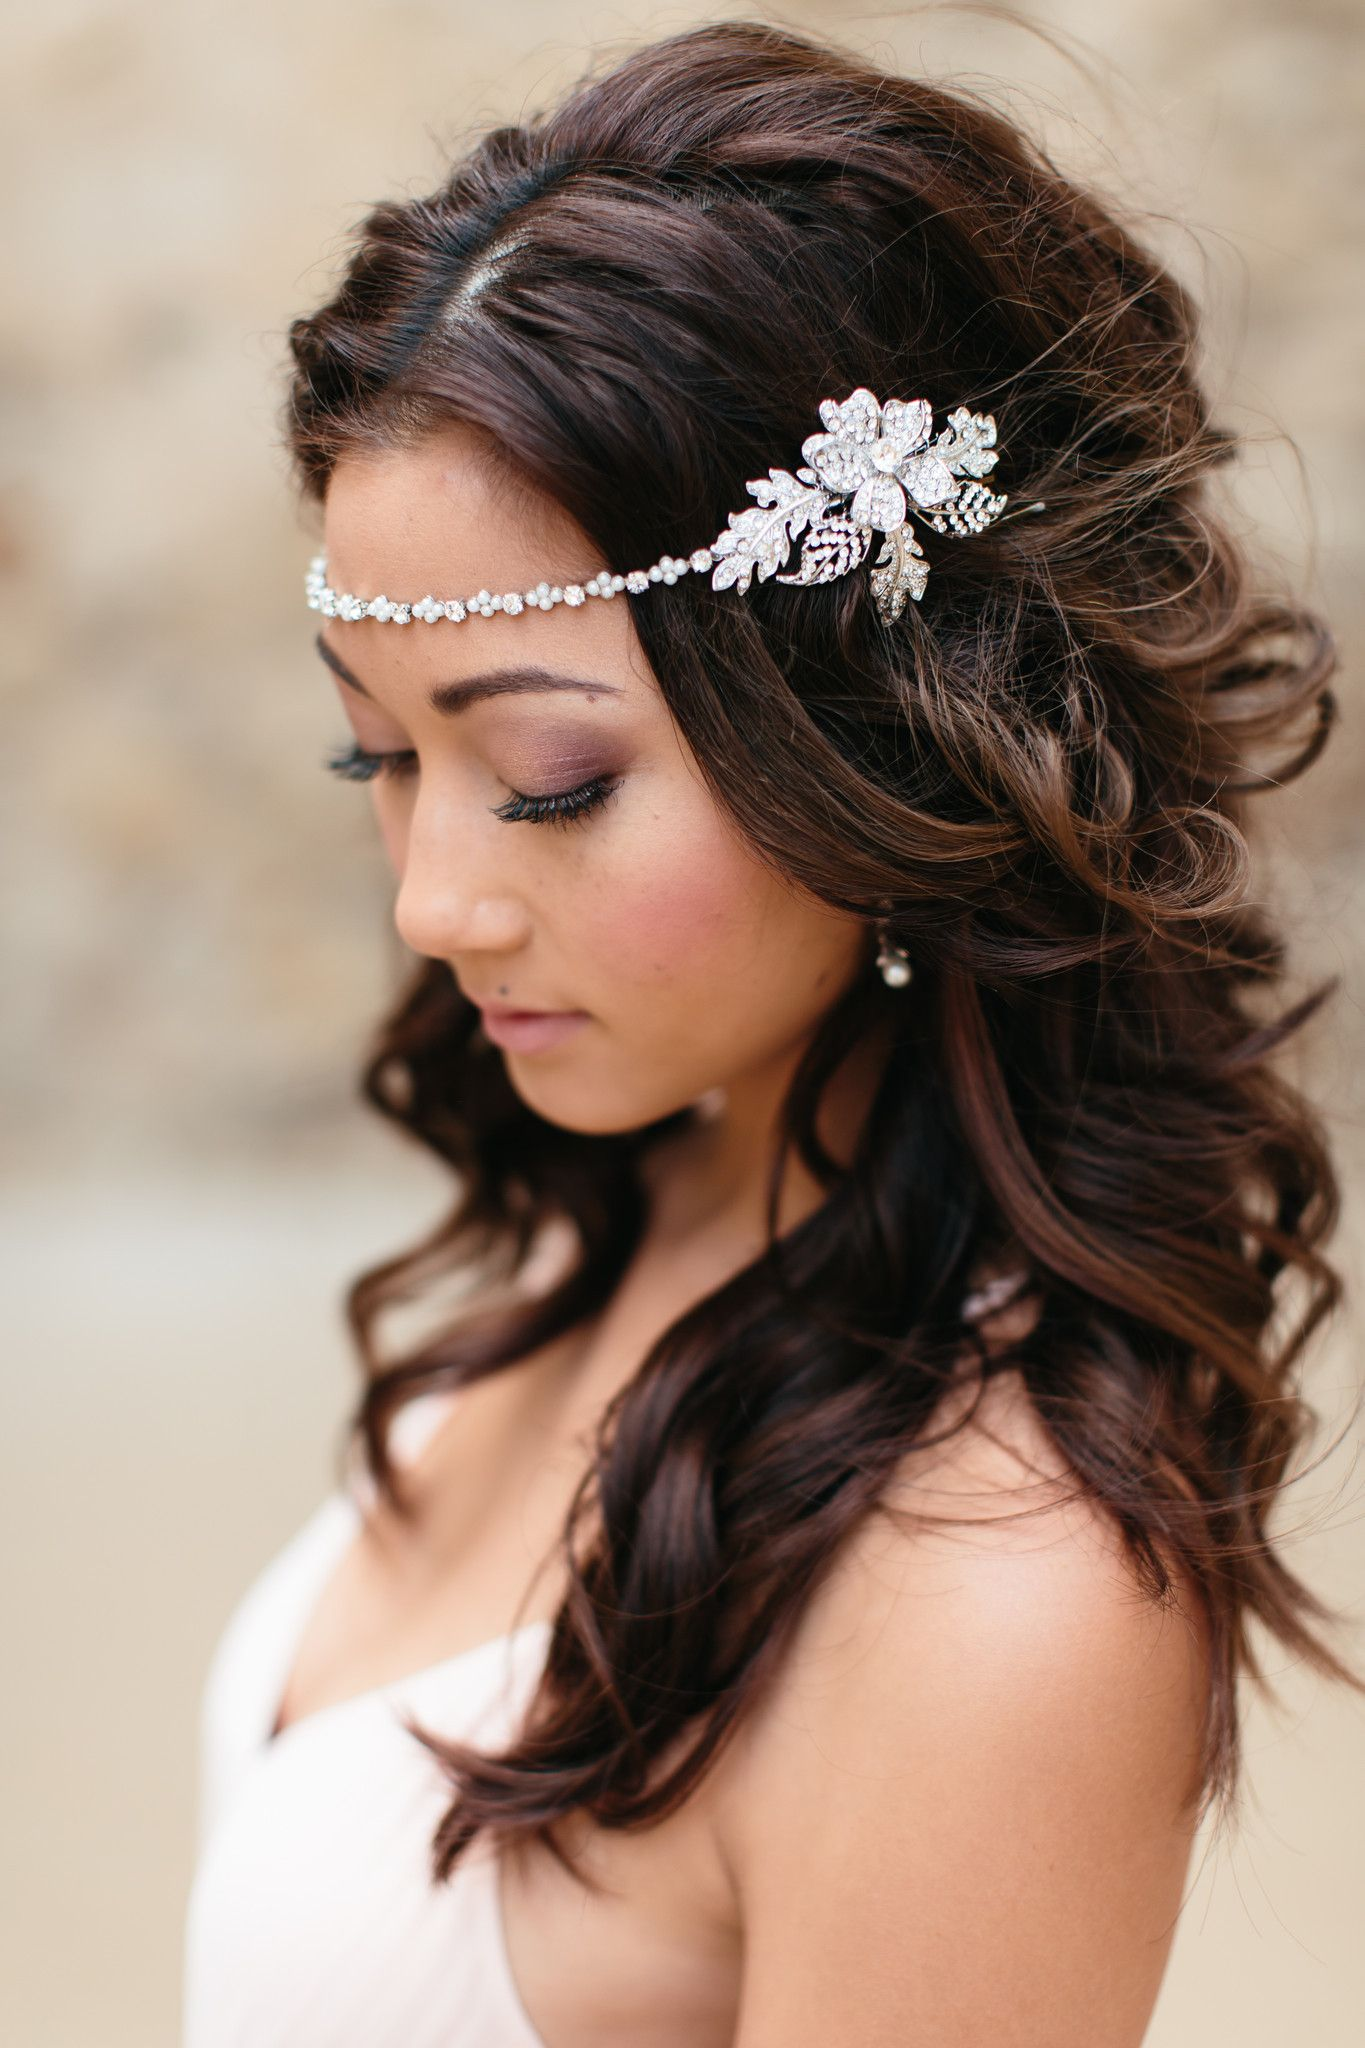 Ashlynn Headband Leaf design Romantic and Weddings